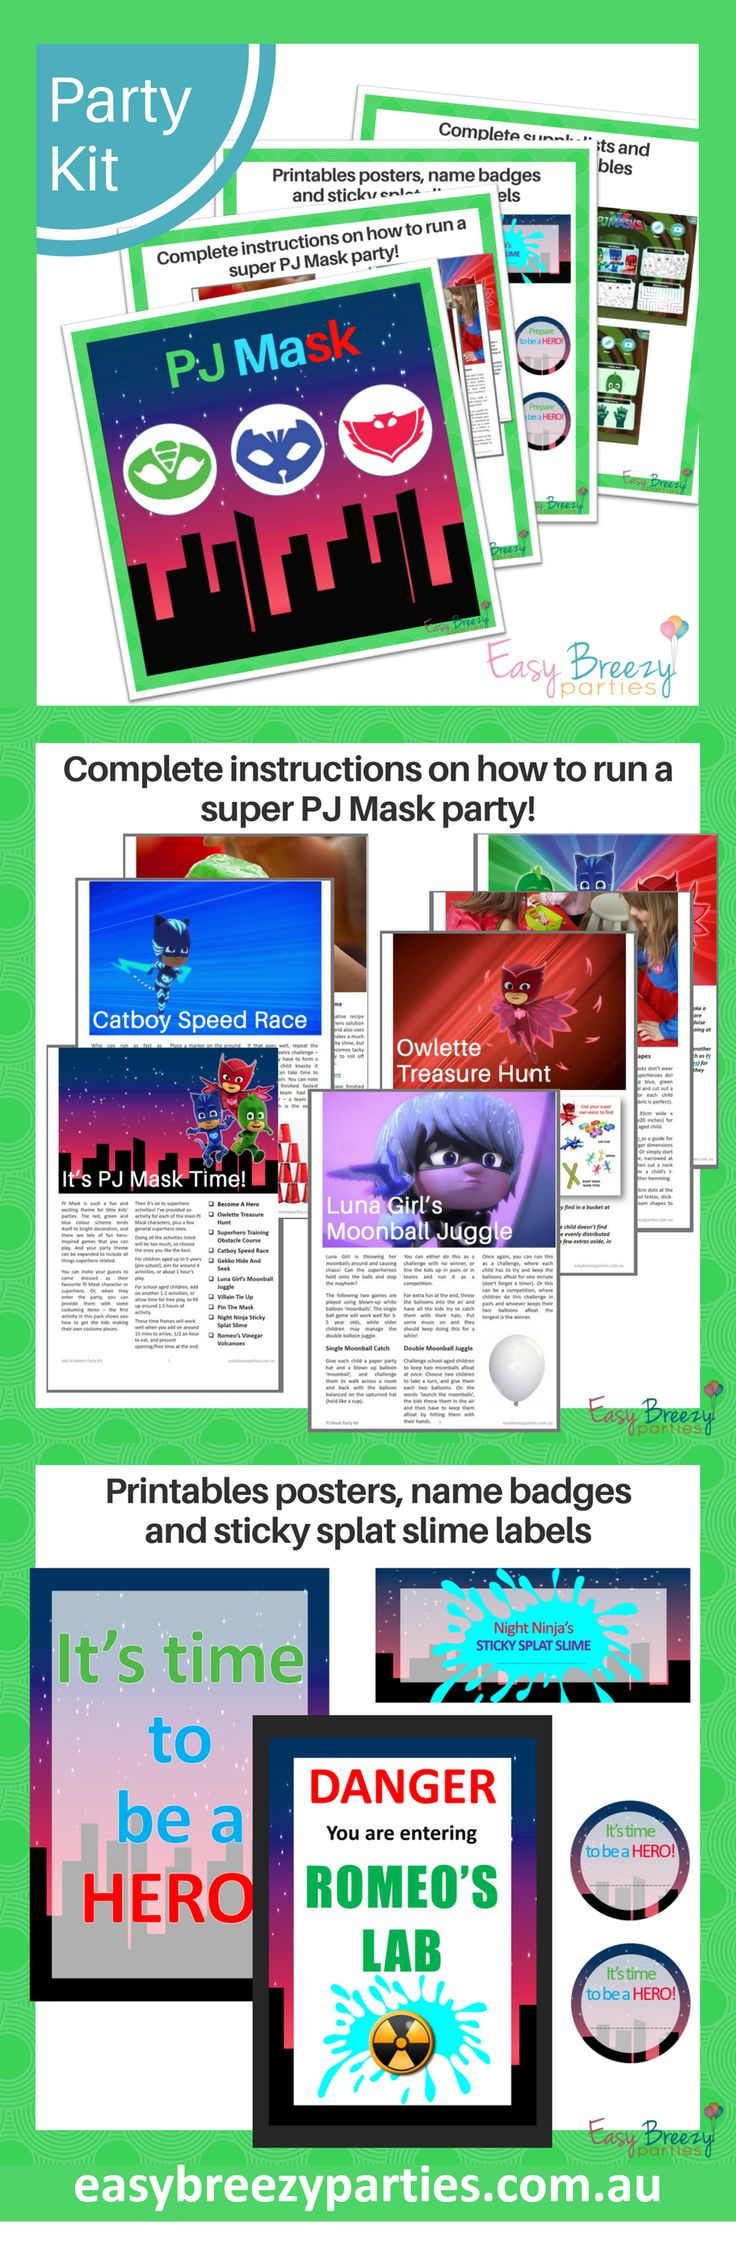 PJ Mask party ideas - Printable party kit with complete instructions on how to run your own PJ Mask party. Printable posters included. #easybreezyparties #pjmask